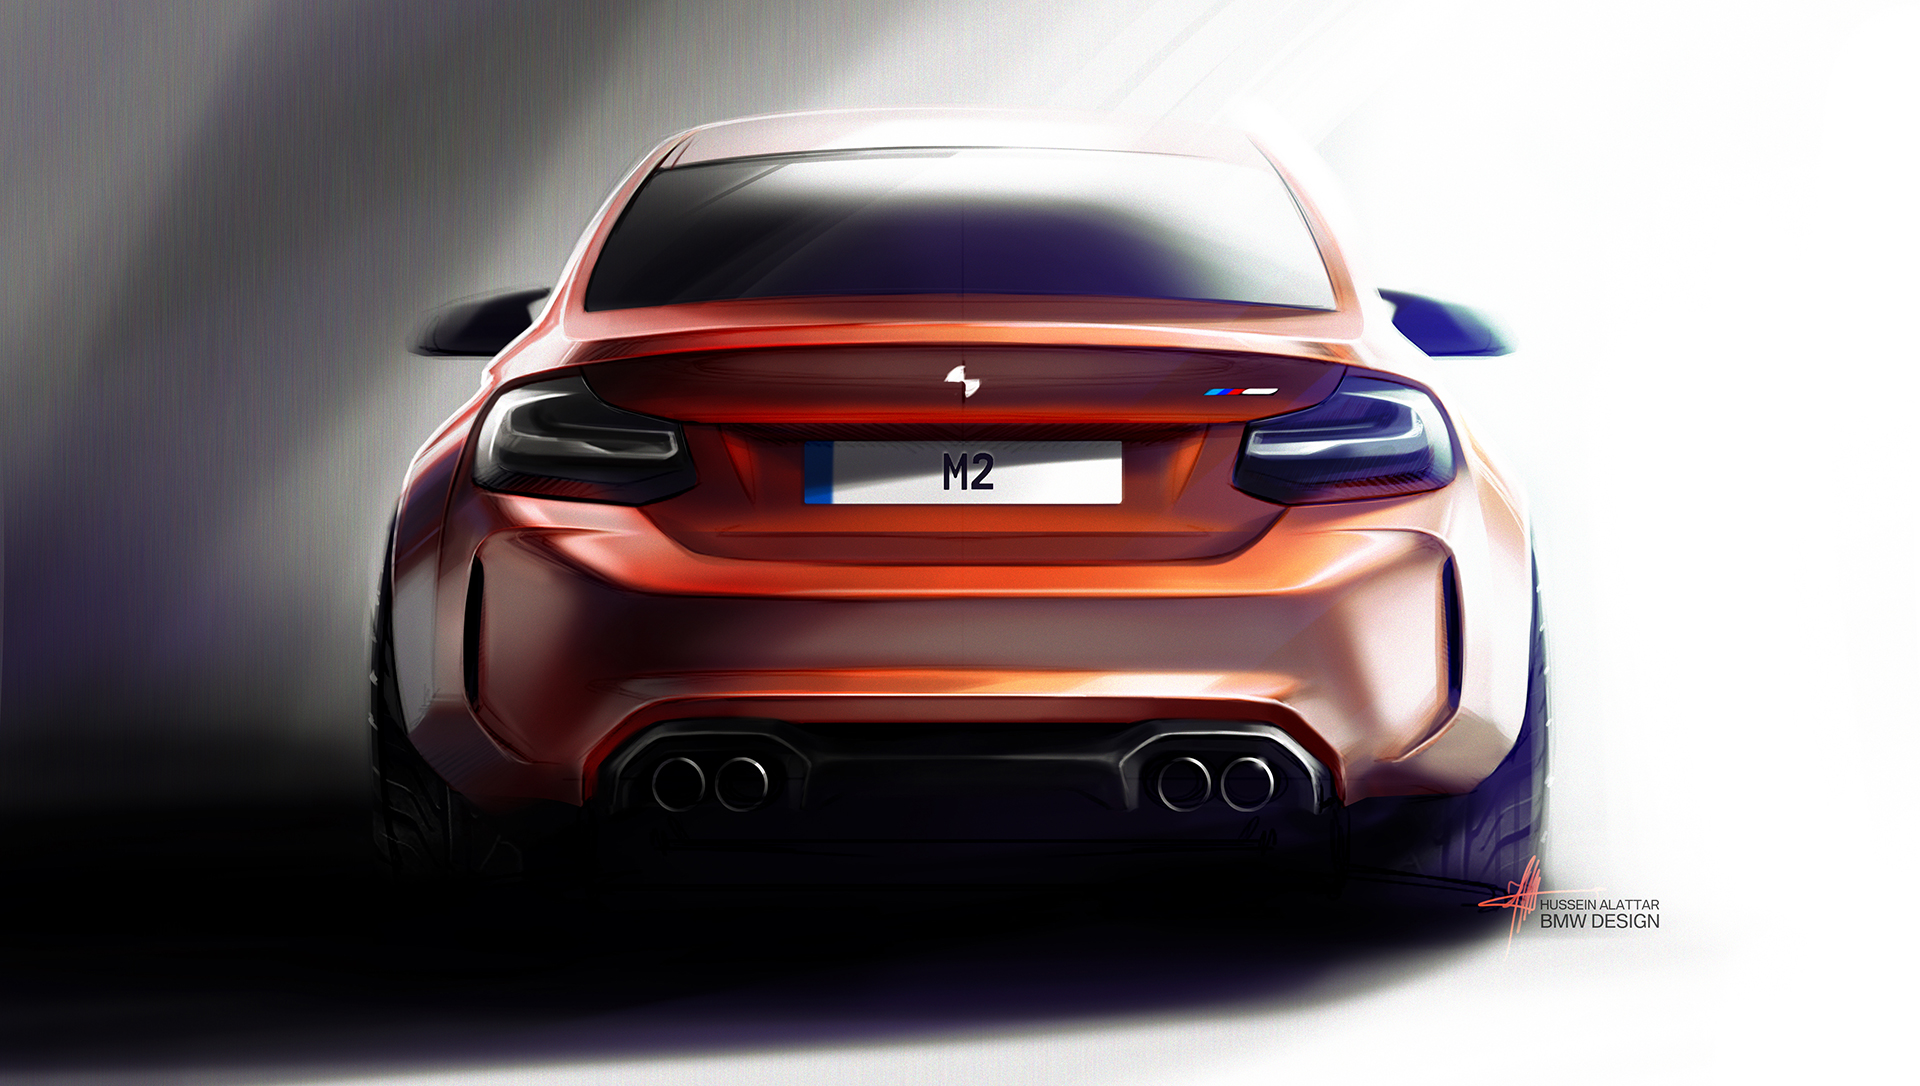 BMW M2 - 2016 - rear design sketch